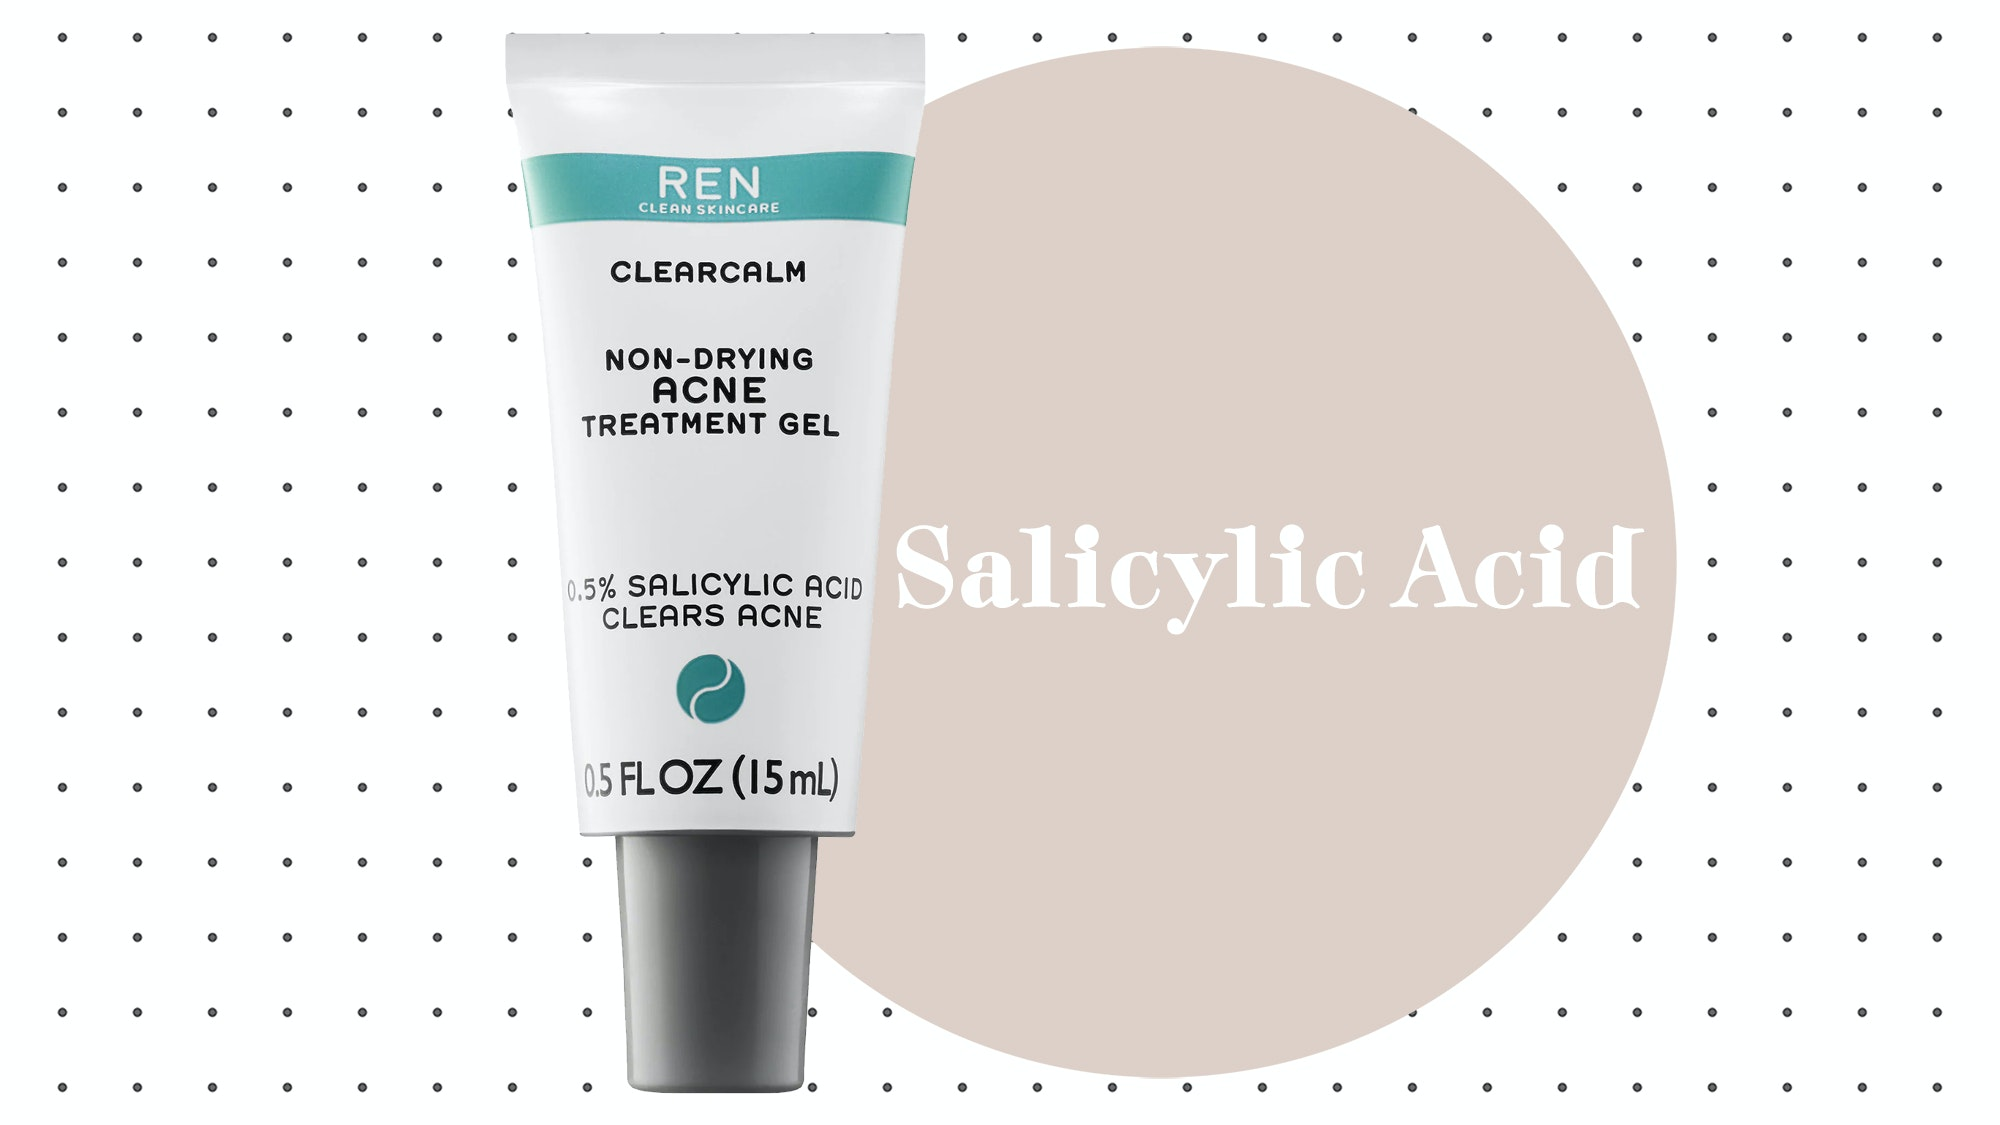 Ren ClearCalm Non-Drying Acne Treatment Gel